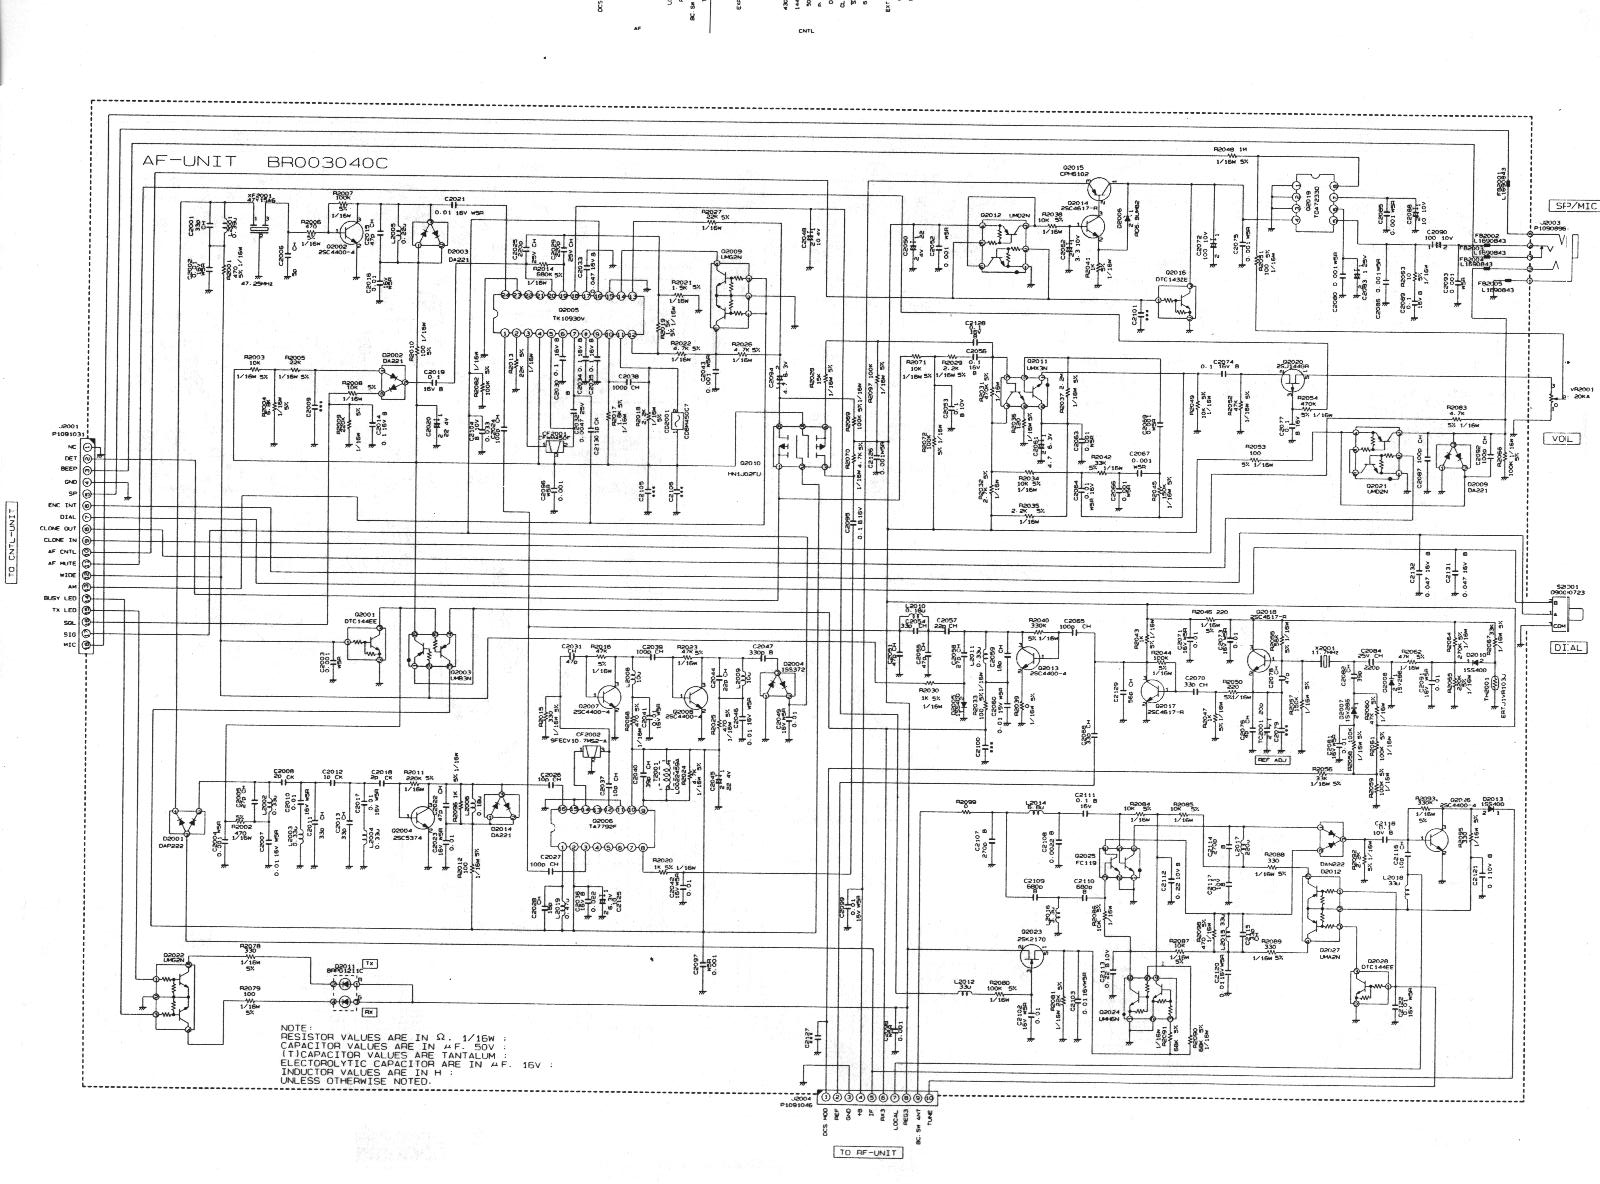 YAESU VX 5 Schematic a index of pub radio_manuals yaesu Yaesu G-450A at sewacar.co